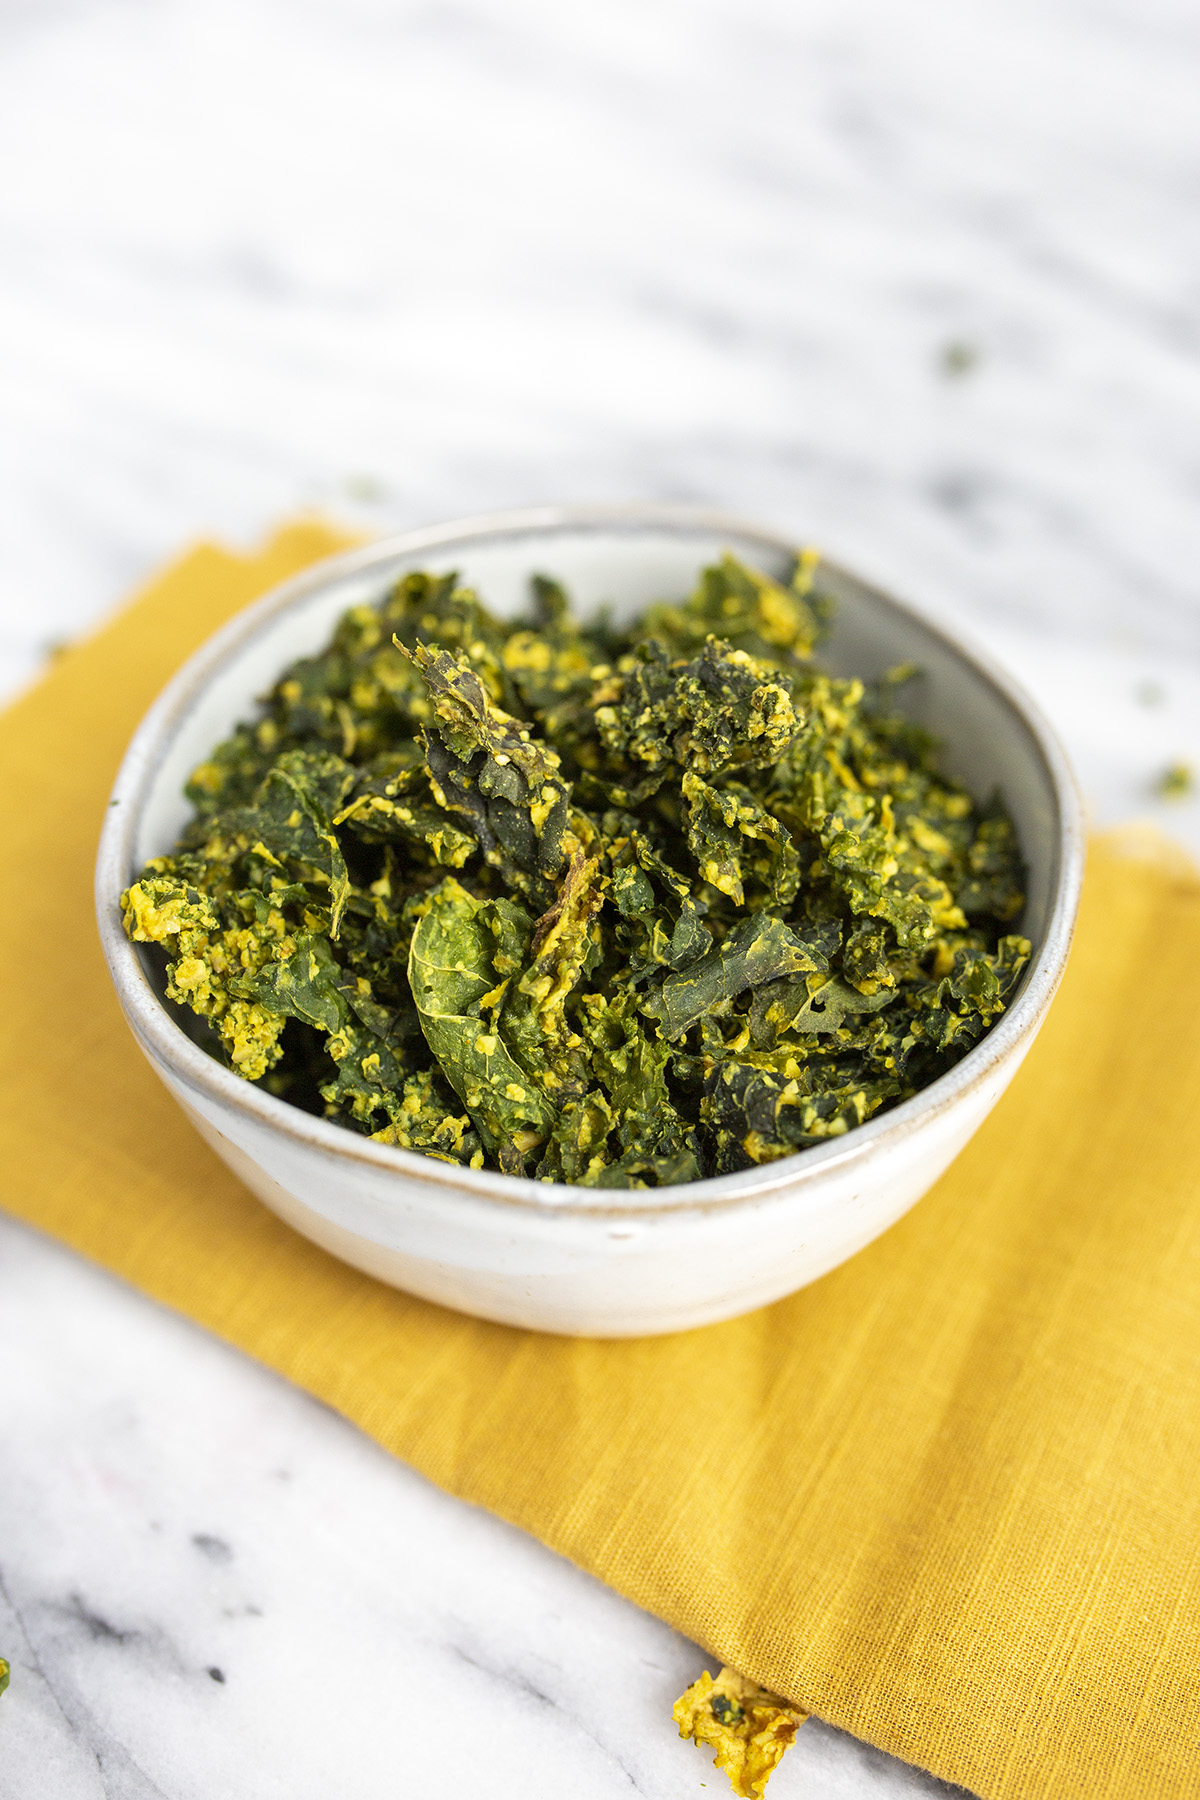 Kale chips with cheese are a great store bought healthy snack